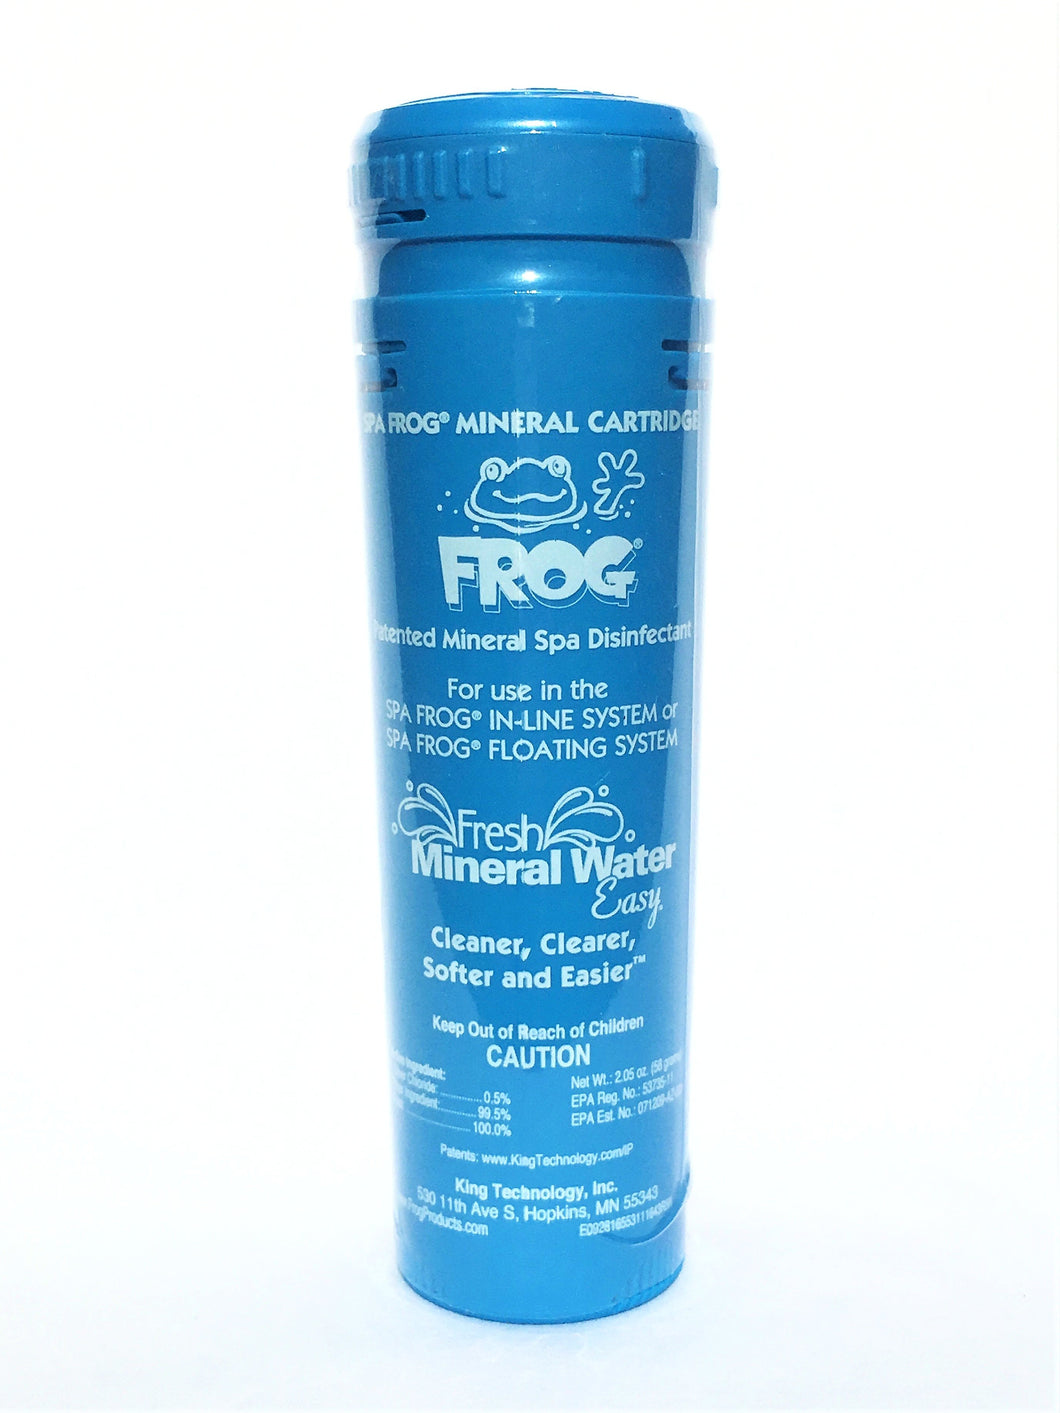 FROG Spa Frog Mineral Cartridge